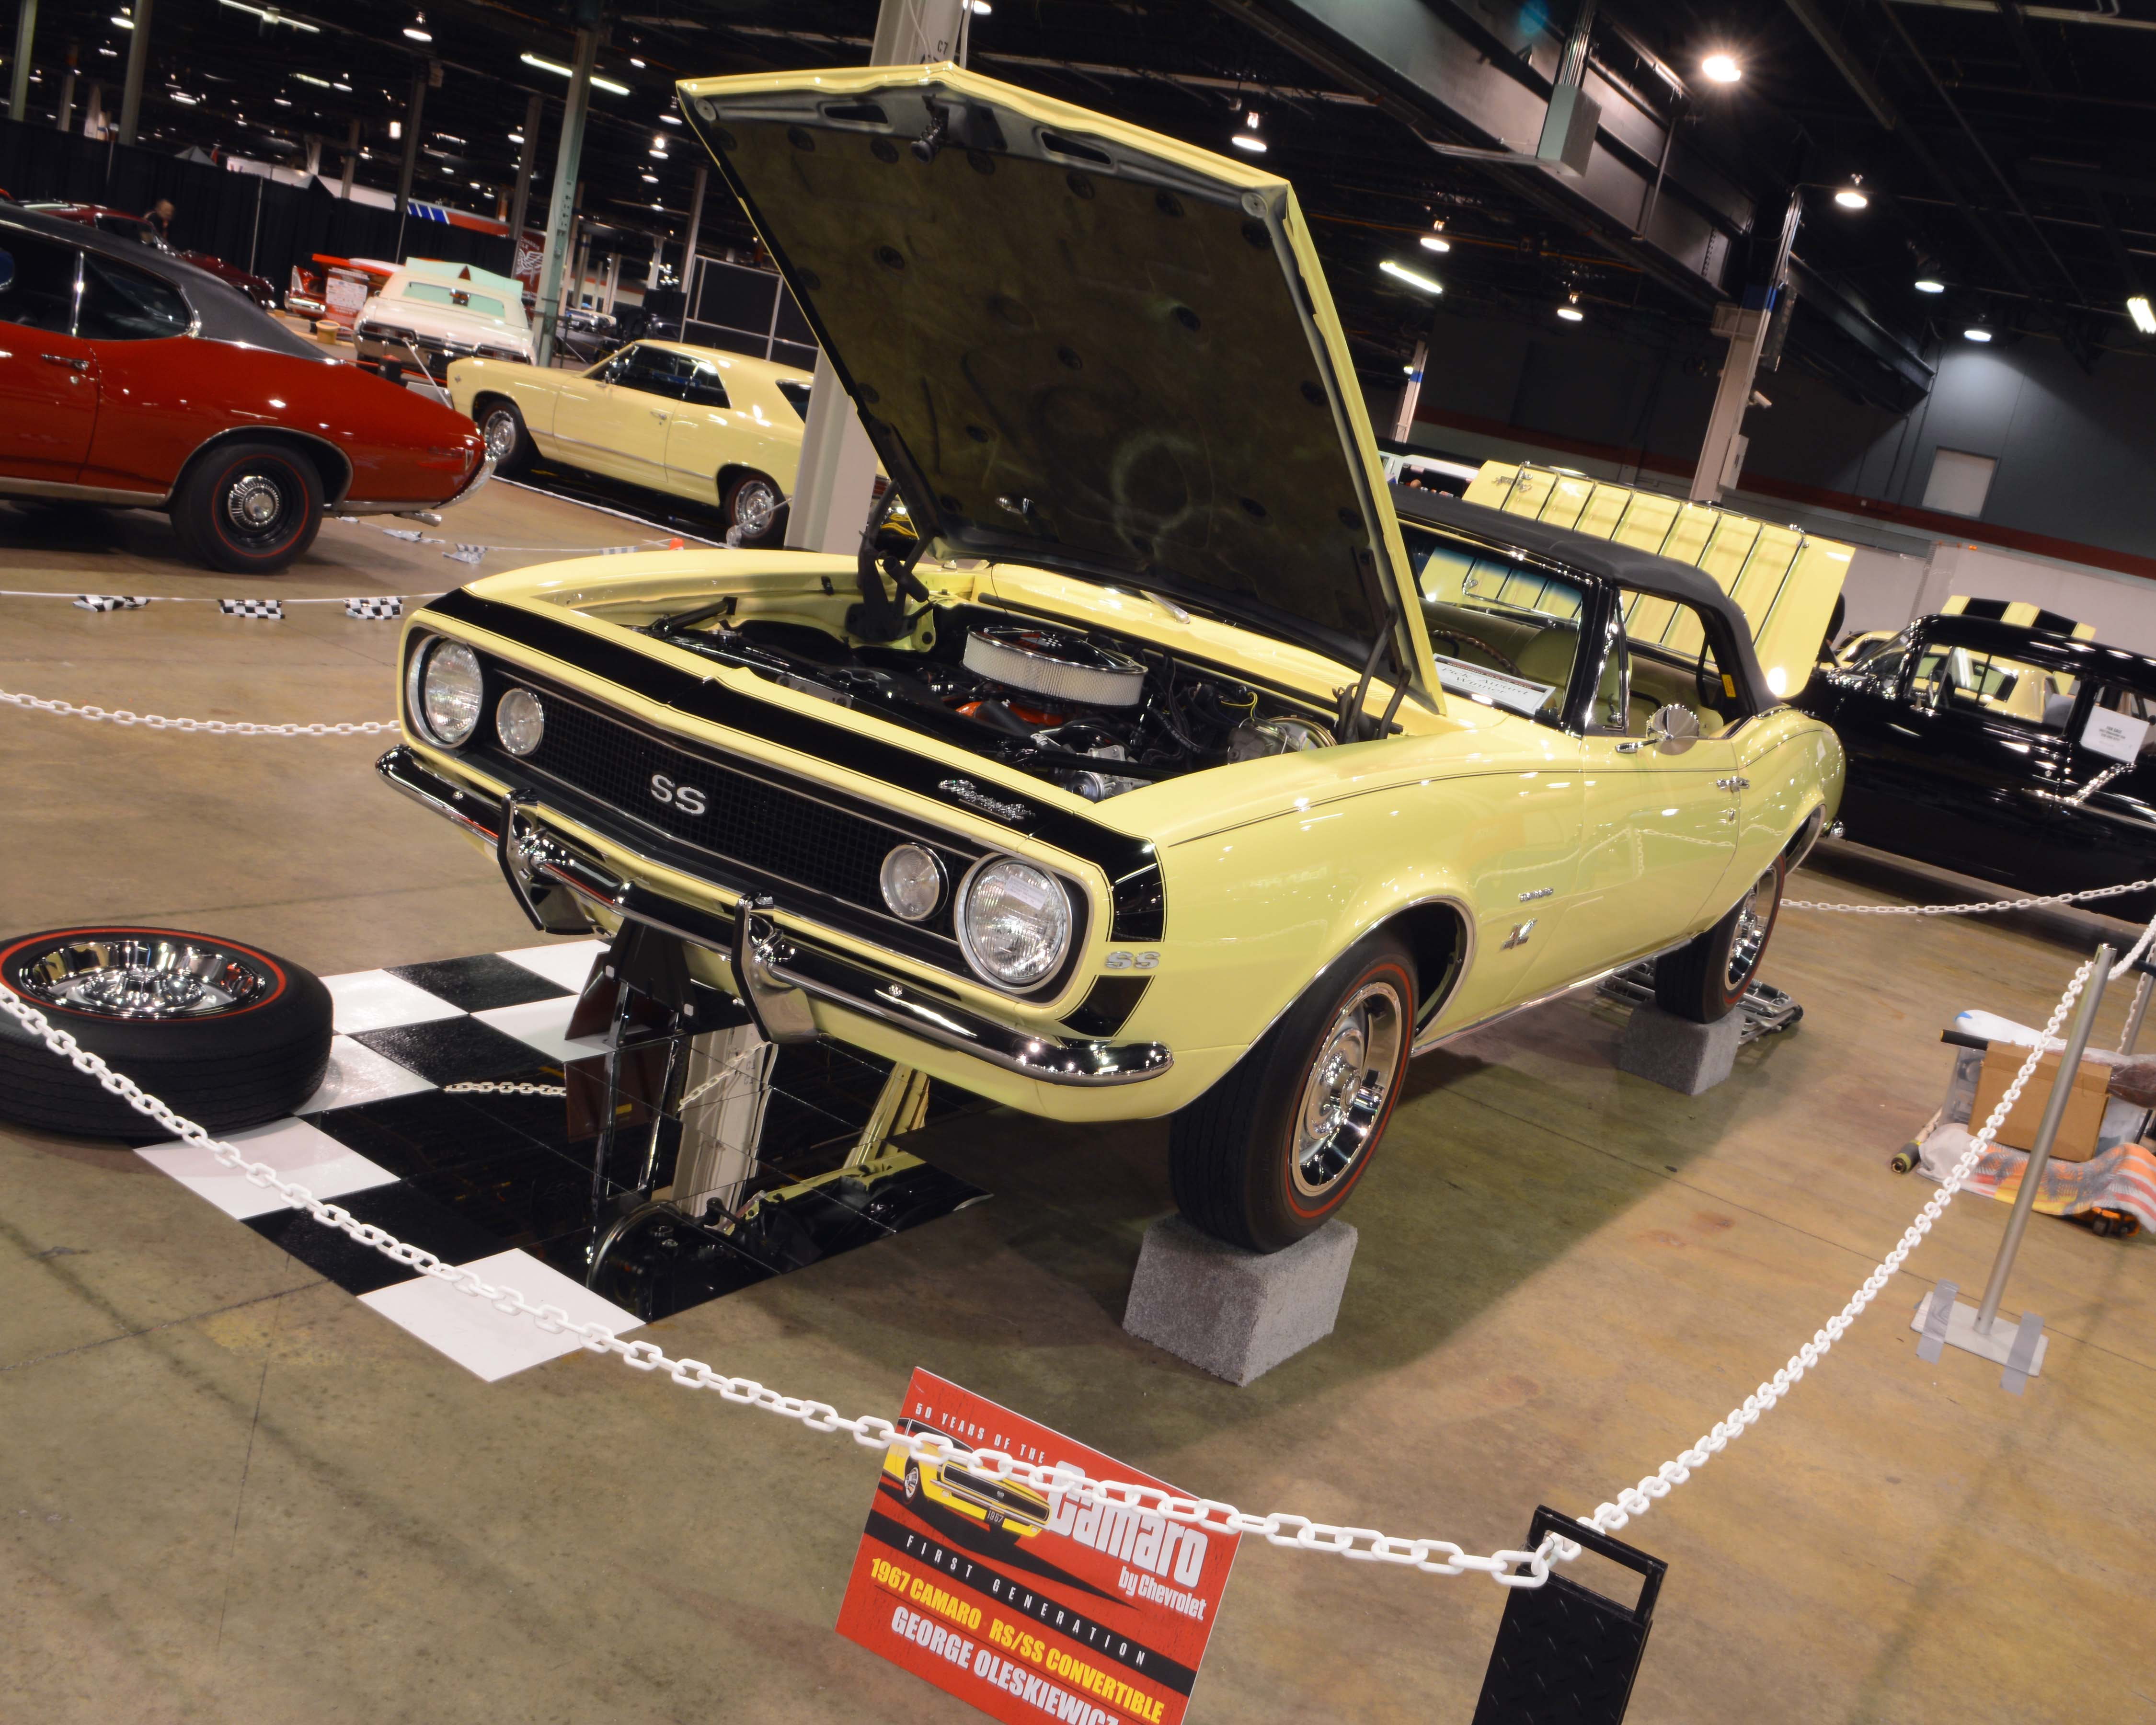 1. Coolest Overall GM – 1967 Camaro L78 Convertible – George Oleskiewicz What, a stock Camaro? In an event that even featured a row of Chevy supercars (Yenko/Motion/COPO etc.), there was something about this car that sets the tone of the entire horsepower era. The Camaro debuted in 1967, and this stunner owned by George Oleskiewicz was certainly beautiful. However, there was much more to it. Beyond being an SS/RS convertible, it is powered by the L78 375-hp 396-ci engine and features a rare color matched interior, and was beautifully refreshed. After being impressed by it from every angle, when we saw it was the event pick of the Brothers Collection (now becoming perhaps the world's greatest private musclecar accumulation), it confirmed a belief that anybody who loves musclecars regardless of their brand preference would have probably happily owned this one.